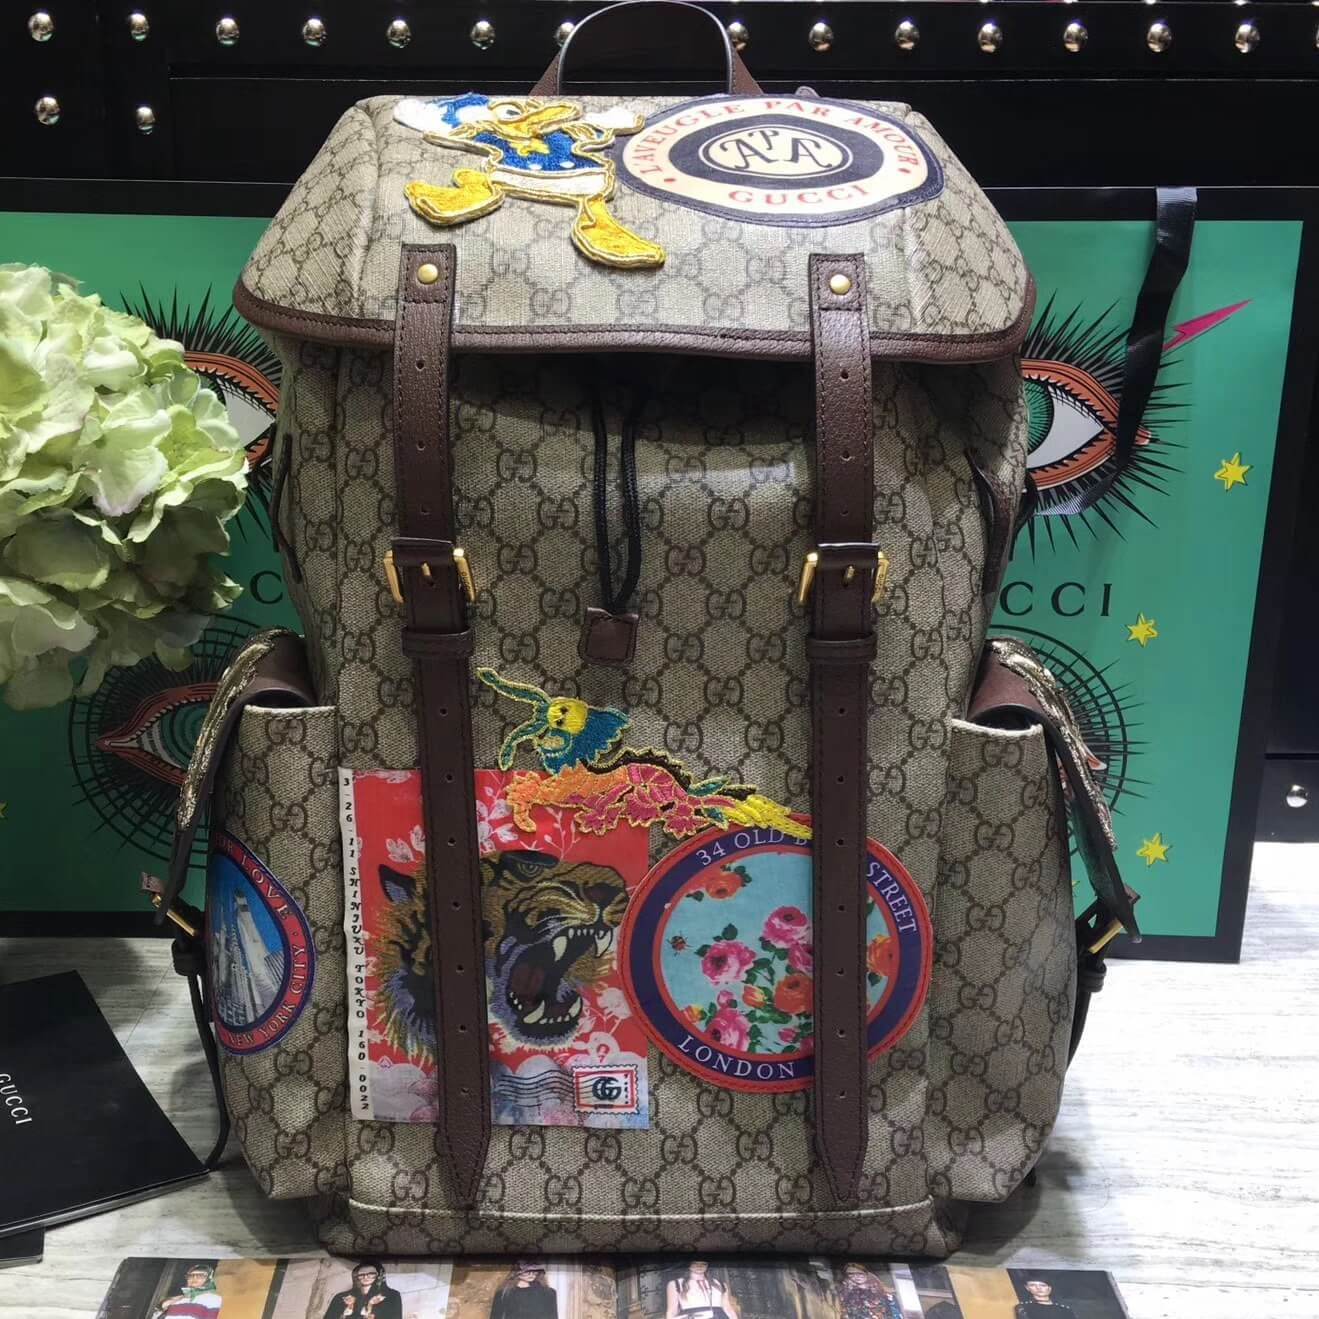 9b841b3d9934 Gucci 460029 Soft GG Supreme Backpack with Donald Duck Appliqués 2017